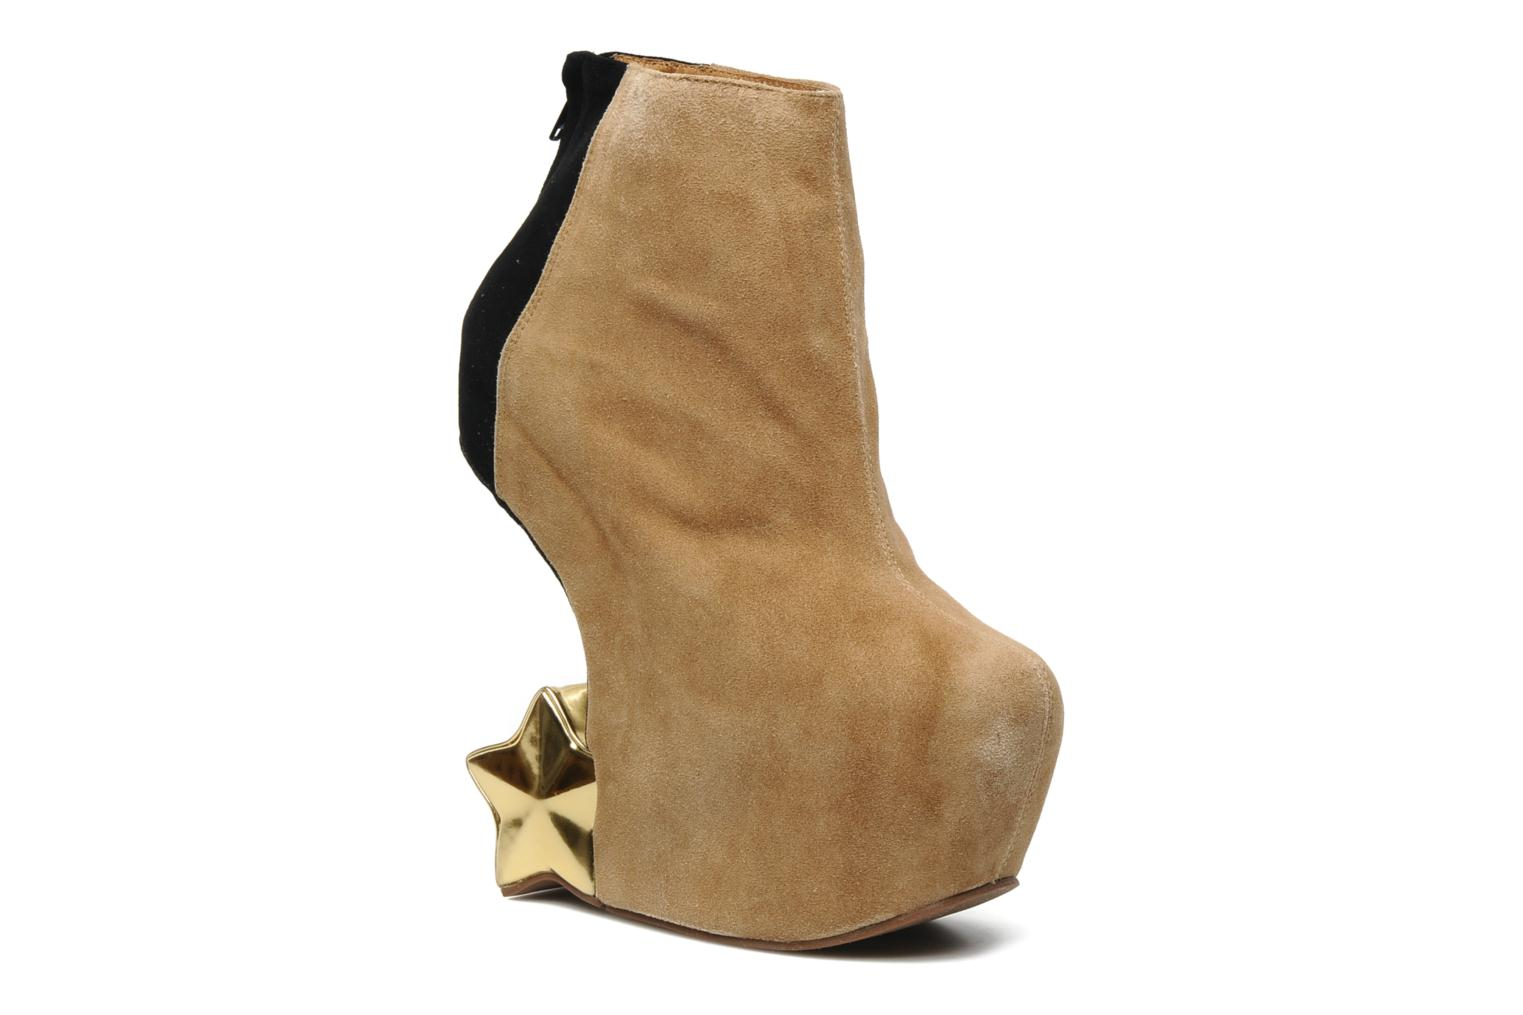 NITEMATE (WITH GOLD STAR) NUDE/BLACK SUEDE